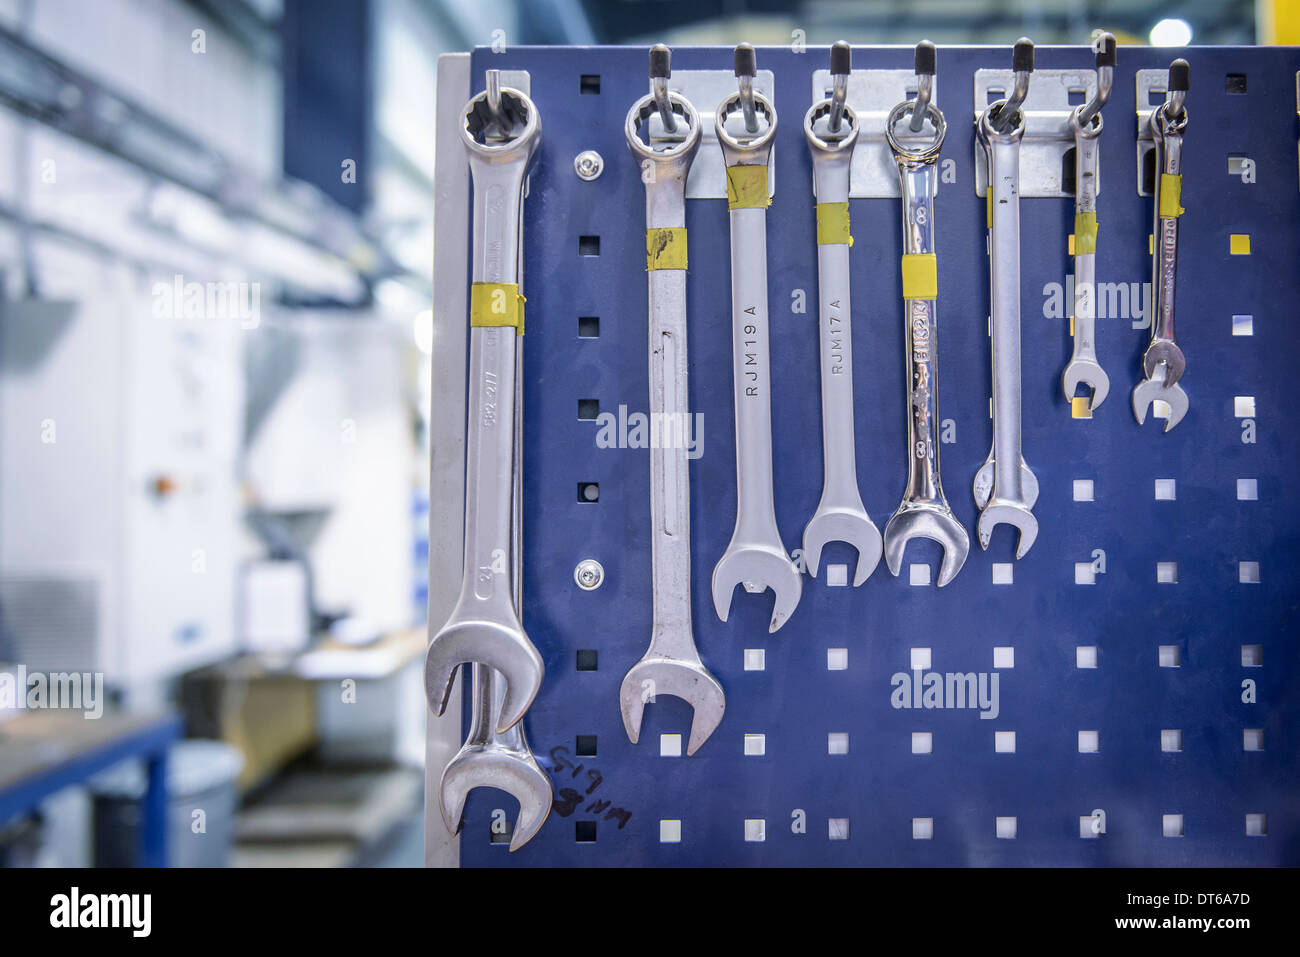 Variety of spanners hanging from workstation rack in factory - Stock Image